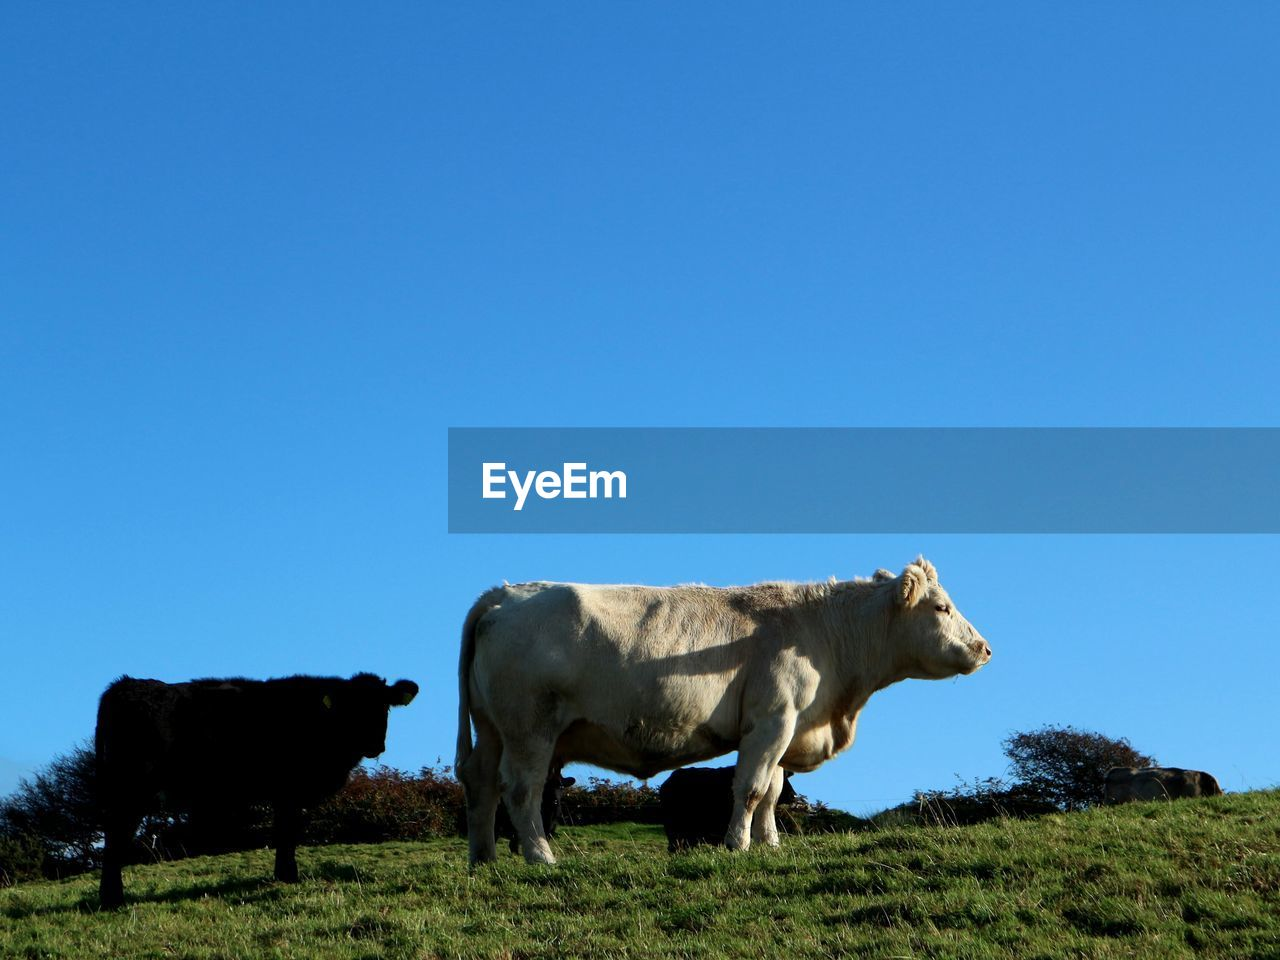 sky, animal, animal themes, mammal, livestock, cattle, copy space, domestic animals, domestic, clear sky, blue, field, pets, cow, grass, land, vertebrate, nature, landscape, no people, herbivorous